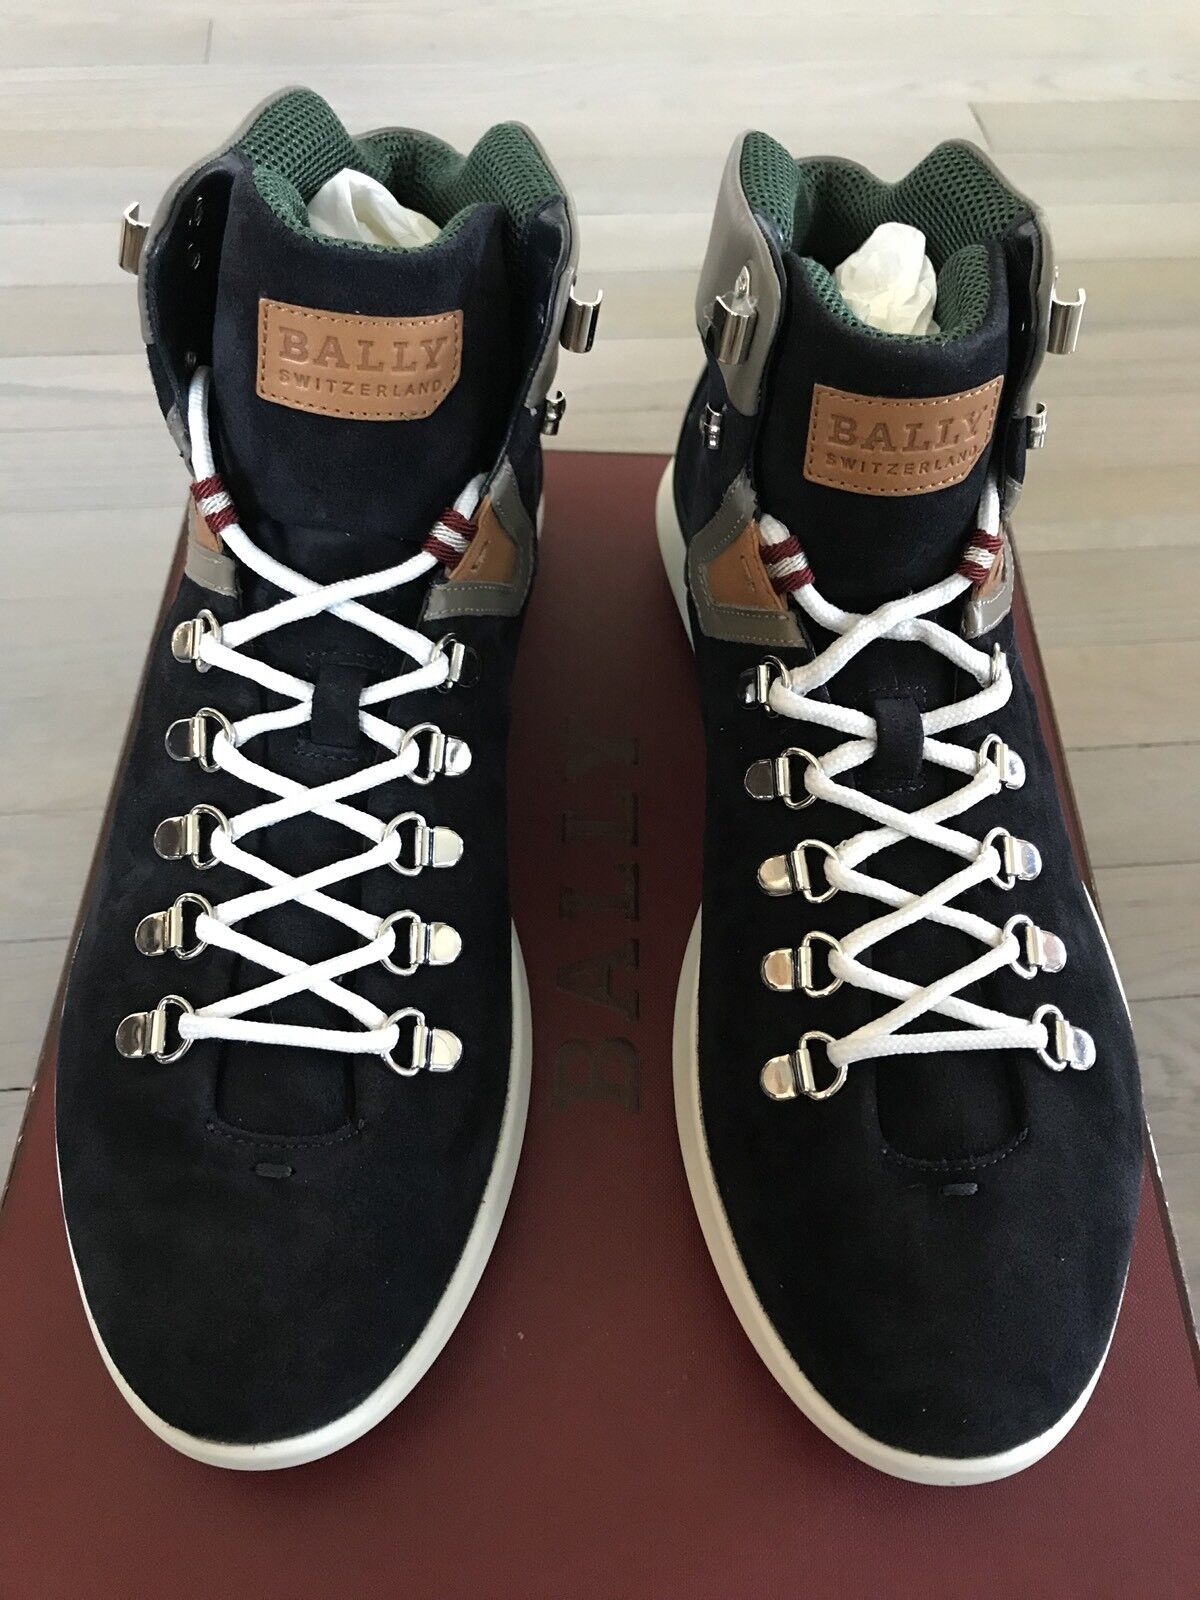 700  Bally Avyd Navy Blue Suede 12 High Tops  size US 12 Suede Made in Italy 5fda76